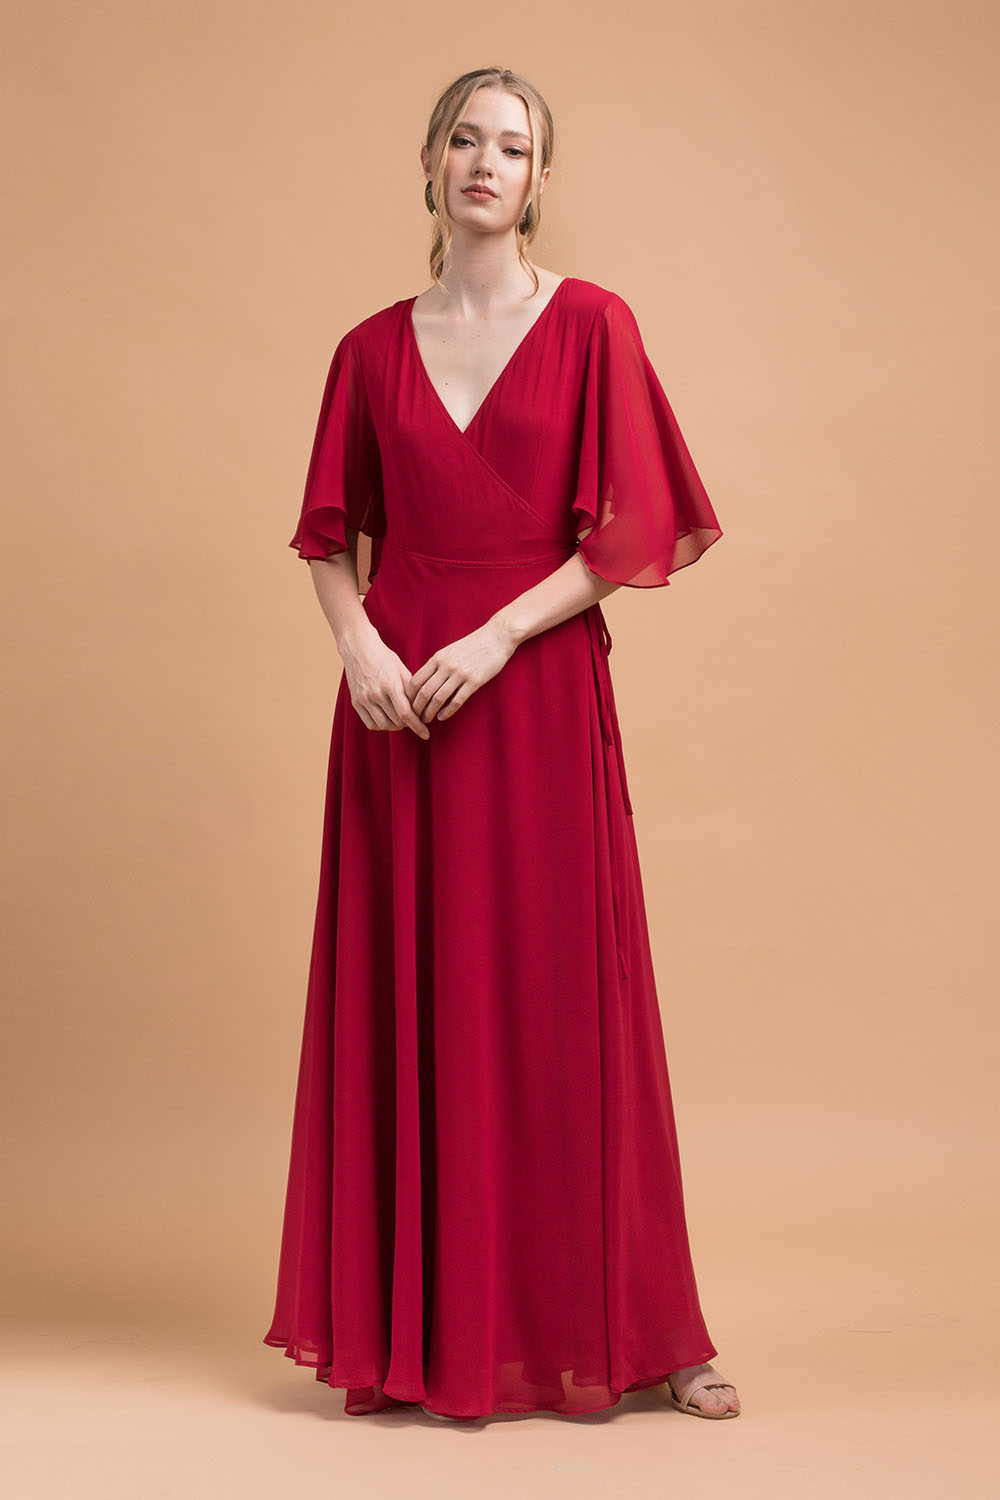 78735fadea ... Maxi Dress with Wide Sleeves (Maroon Chiffon).  first01000x1500_Zoo_HOL18_L054_002; sec-1000x1500_Zoo_HOL18_L054_012;  1000x1500_Zoo_HOL18_L054_003 ...